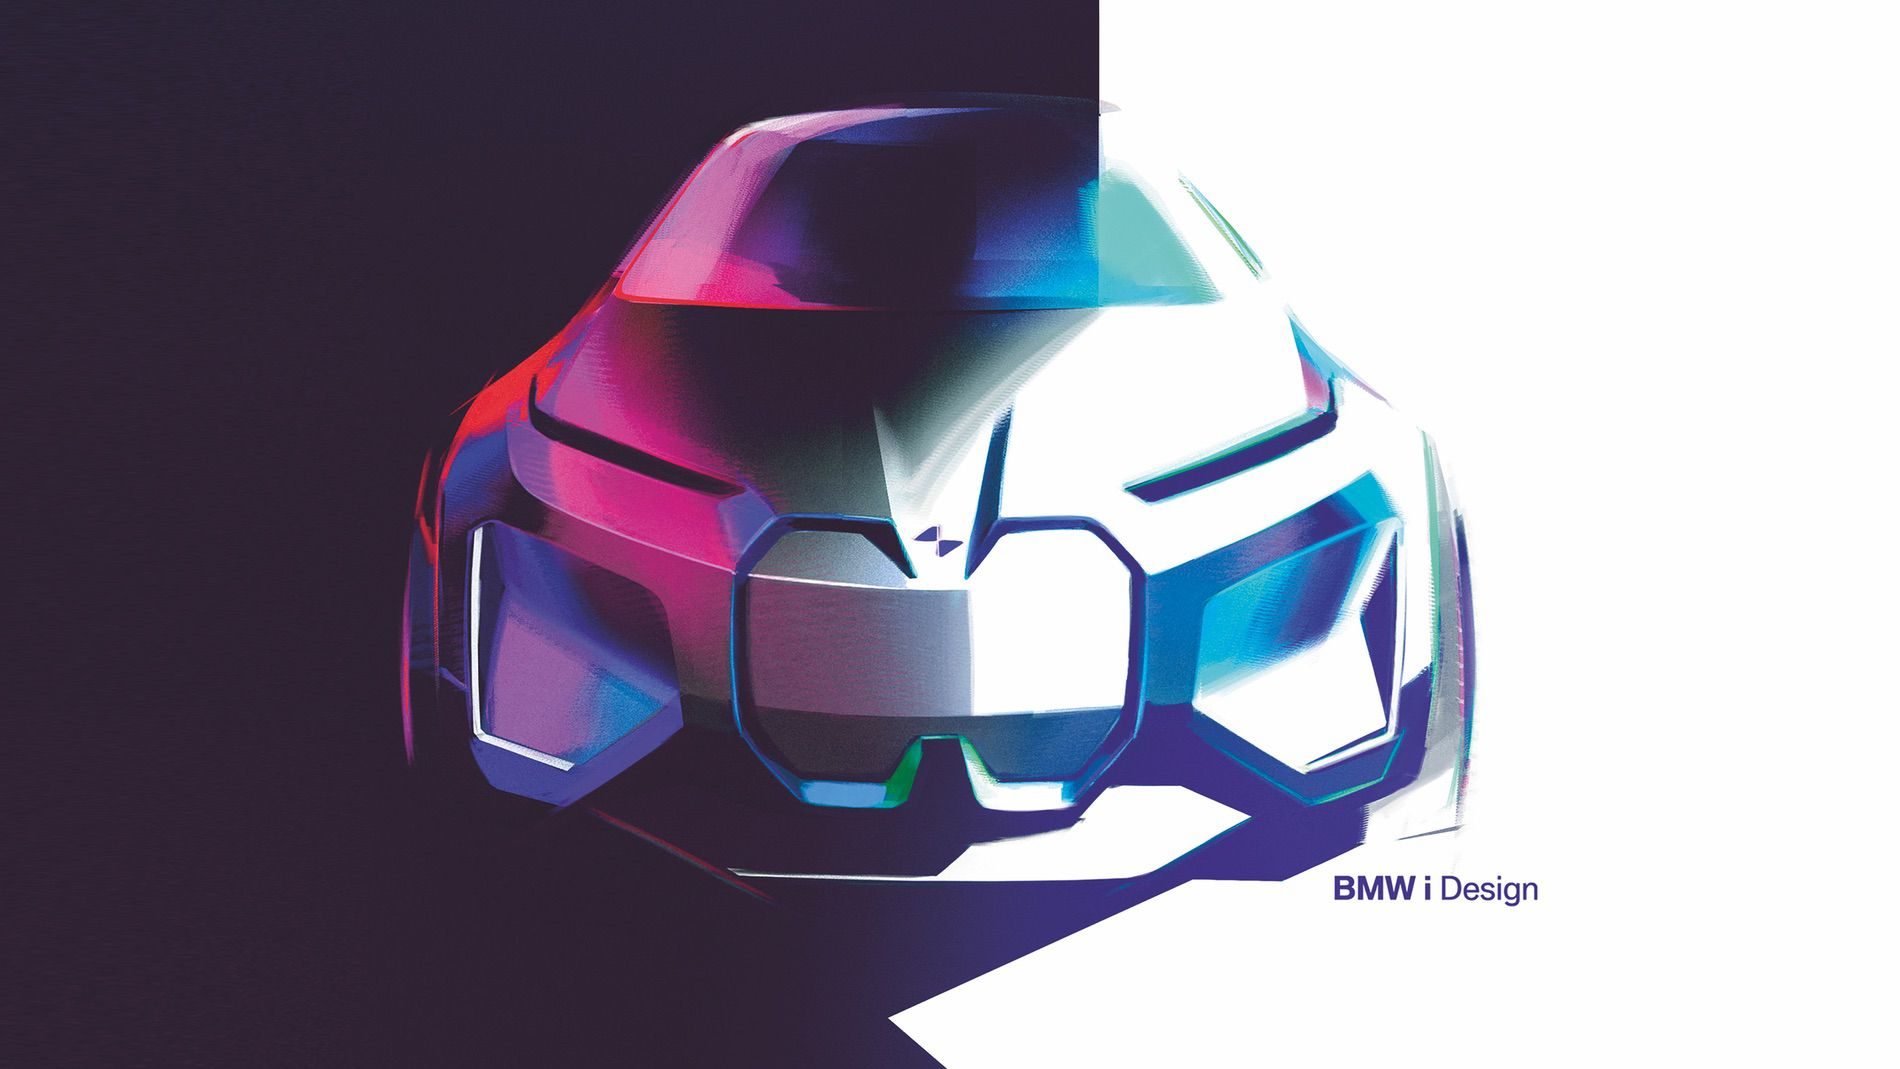 BMW VISION INEXT SKETCHES 01